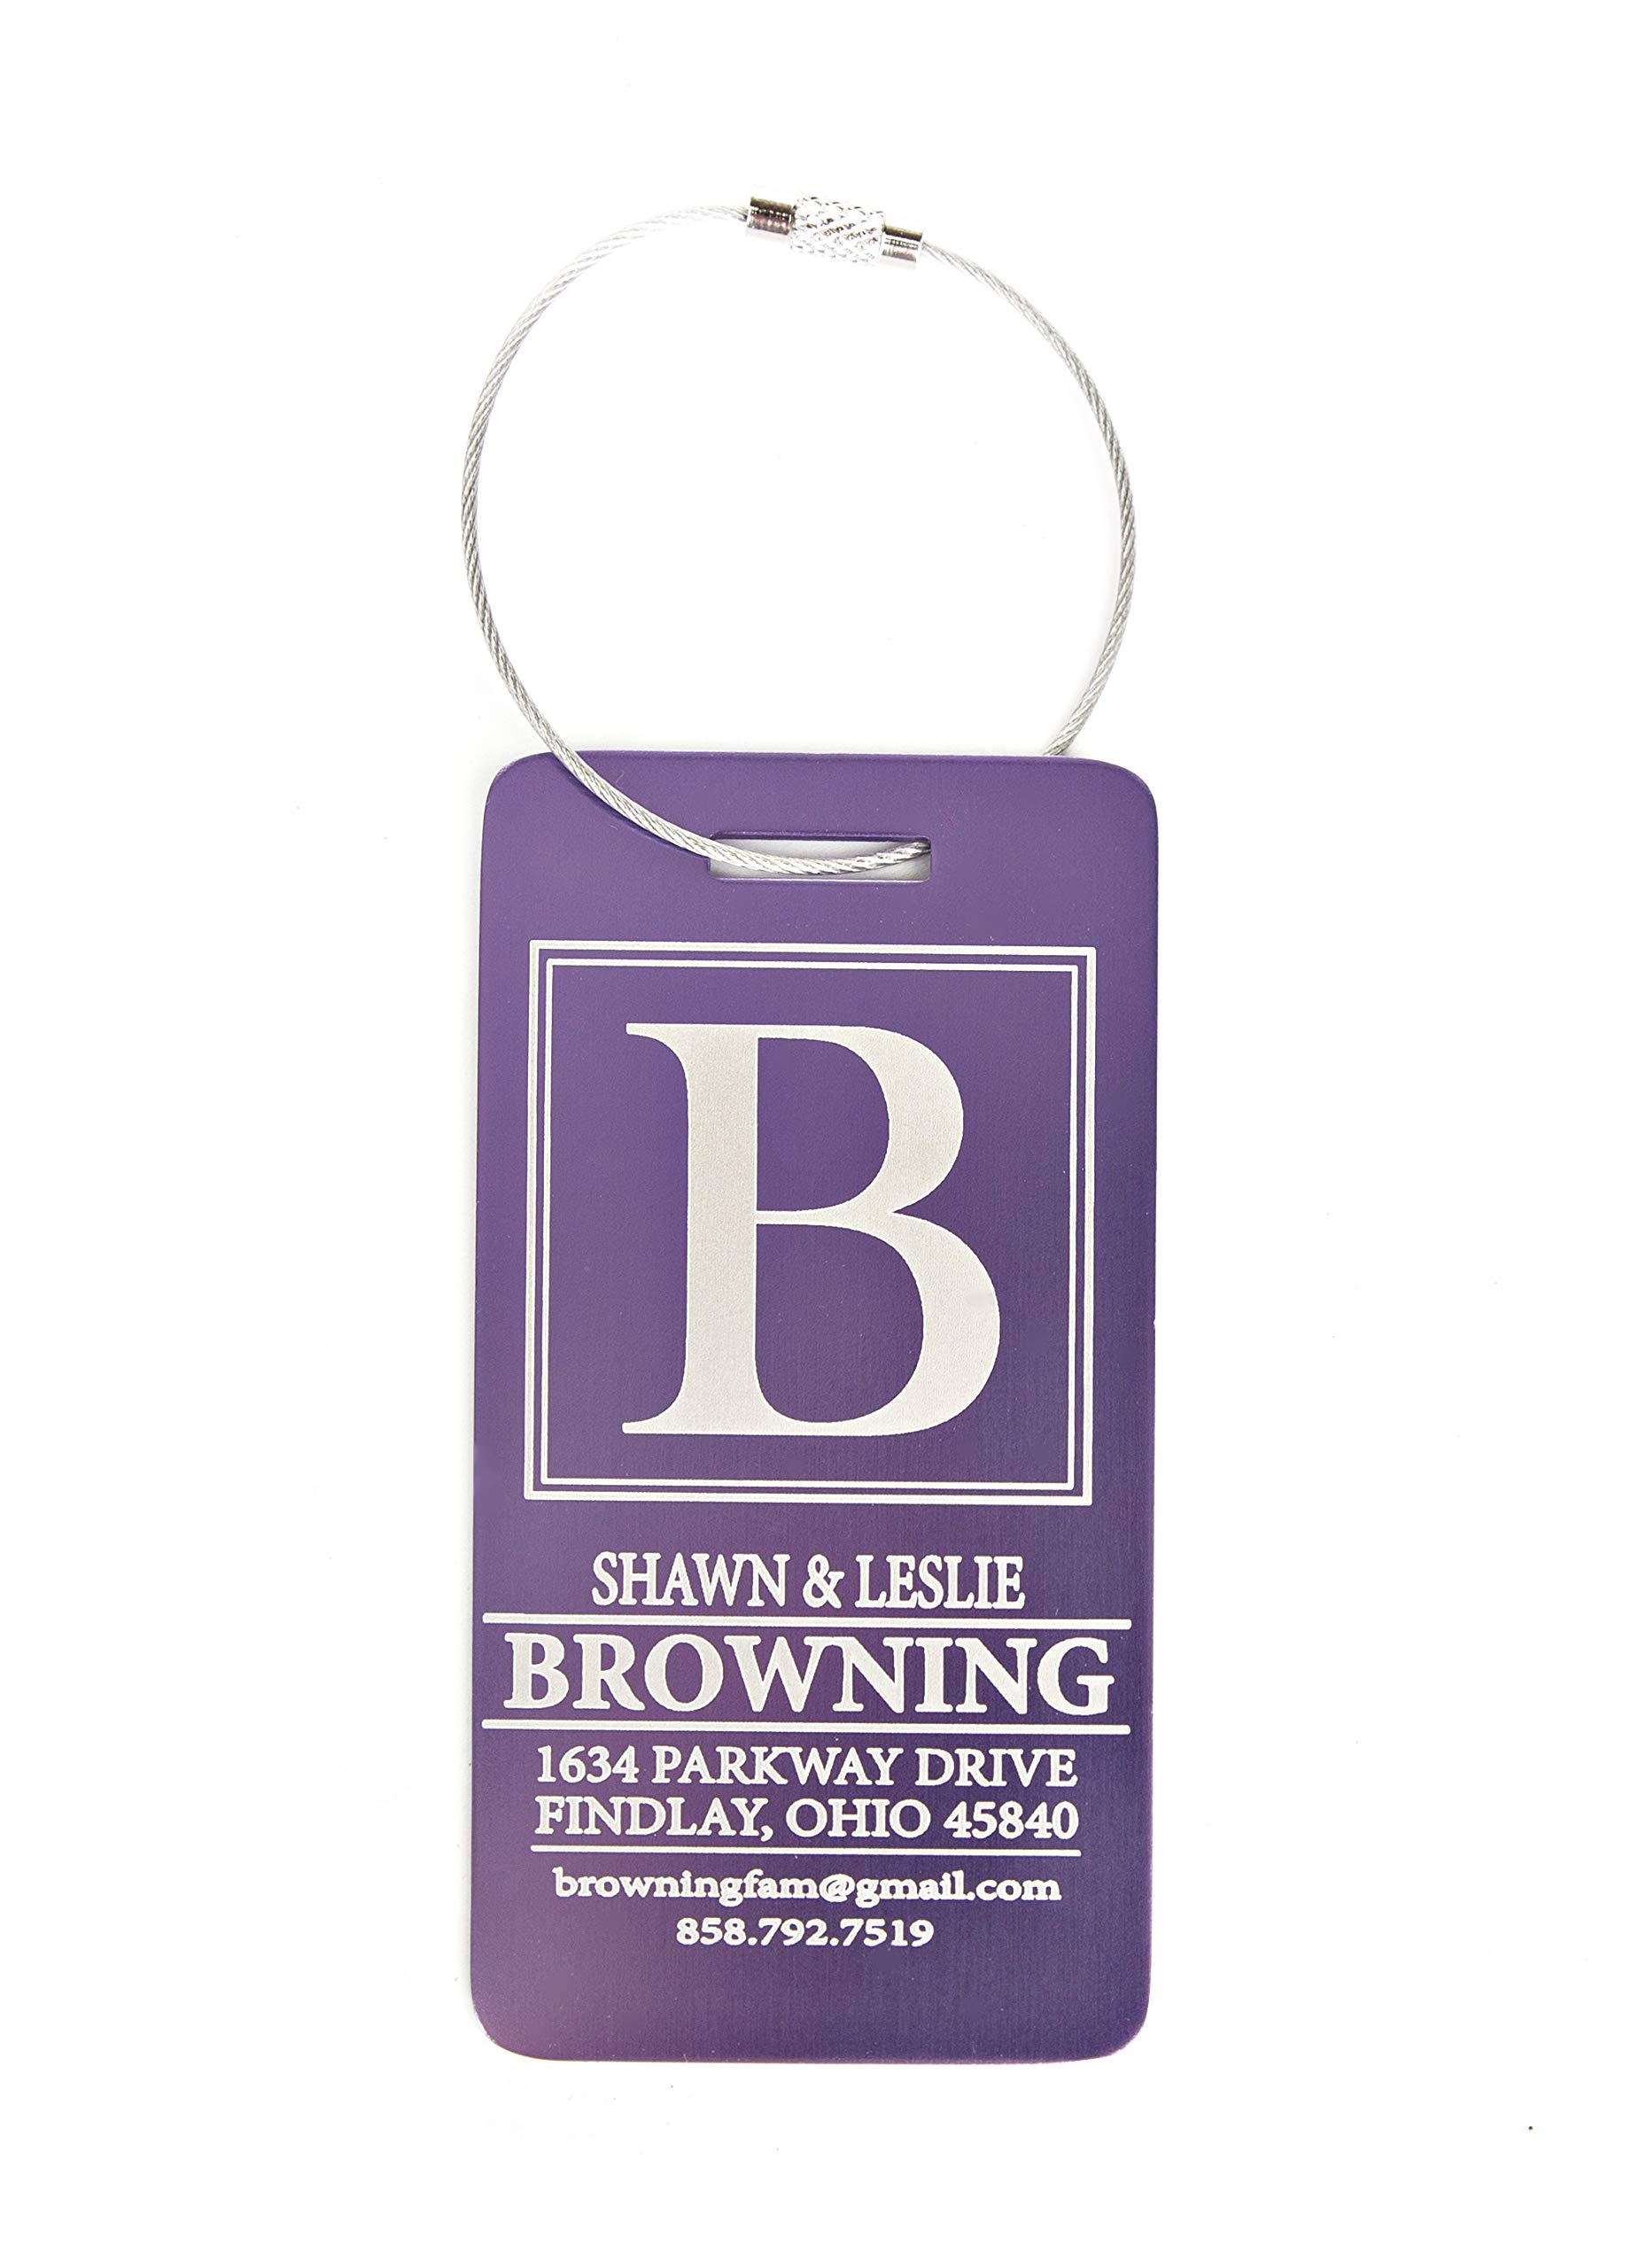 Personalized Luggage Tags Engraved Design - Elegant and Durable Travel Suitcase Name Tags (Lilac Browning Design, 1 Luggage Tag) by Qualtry